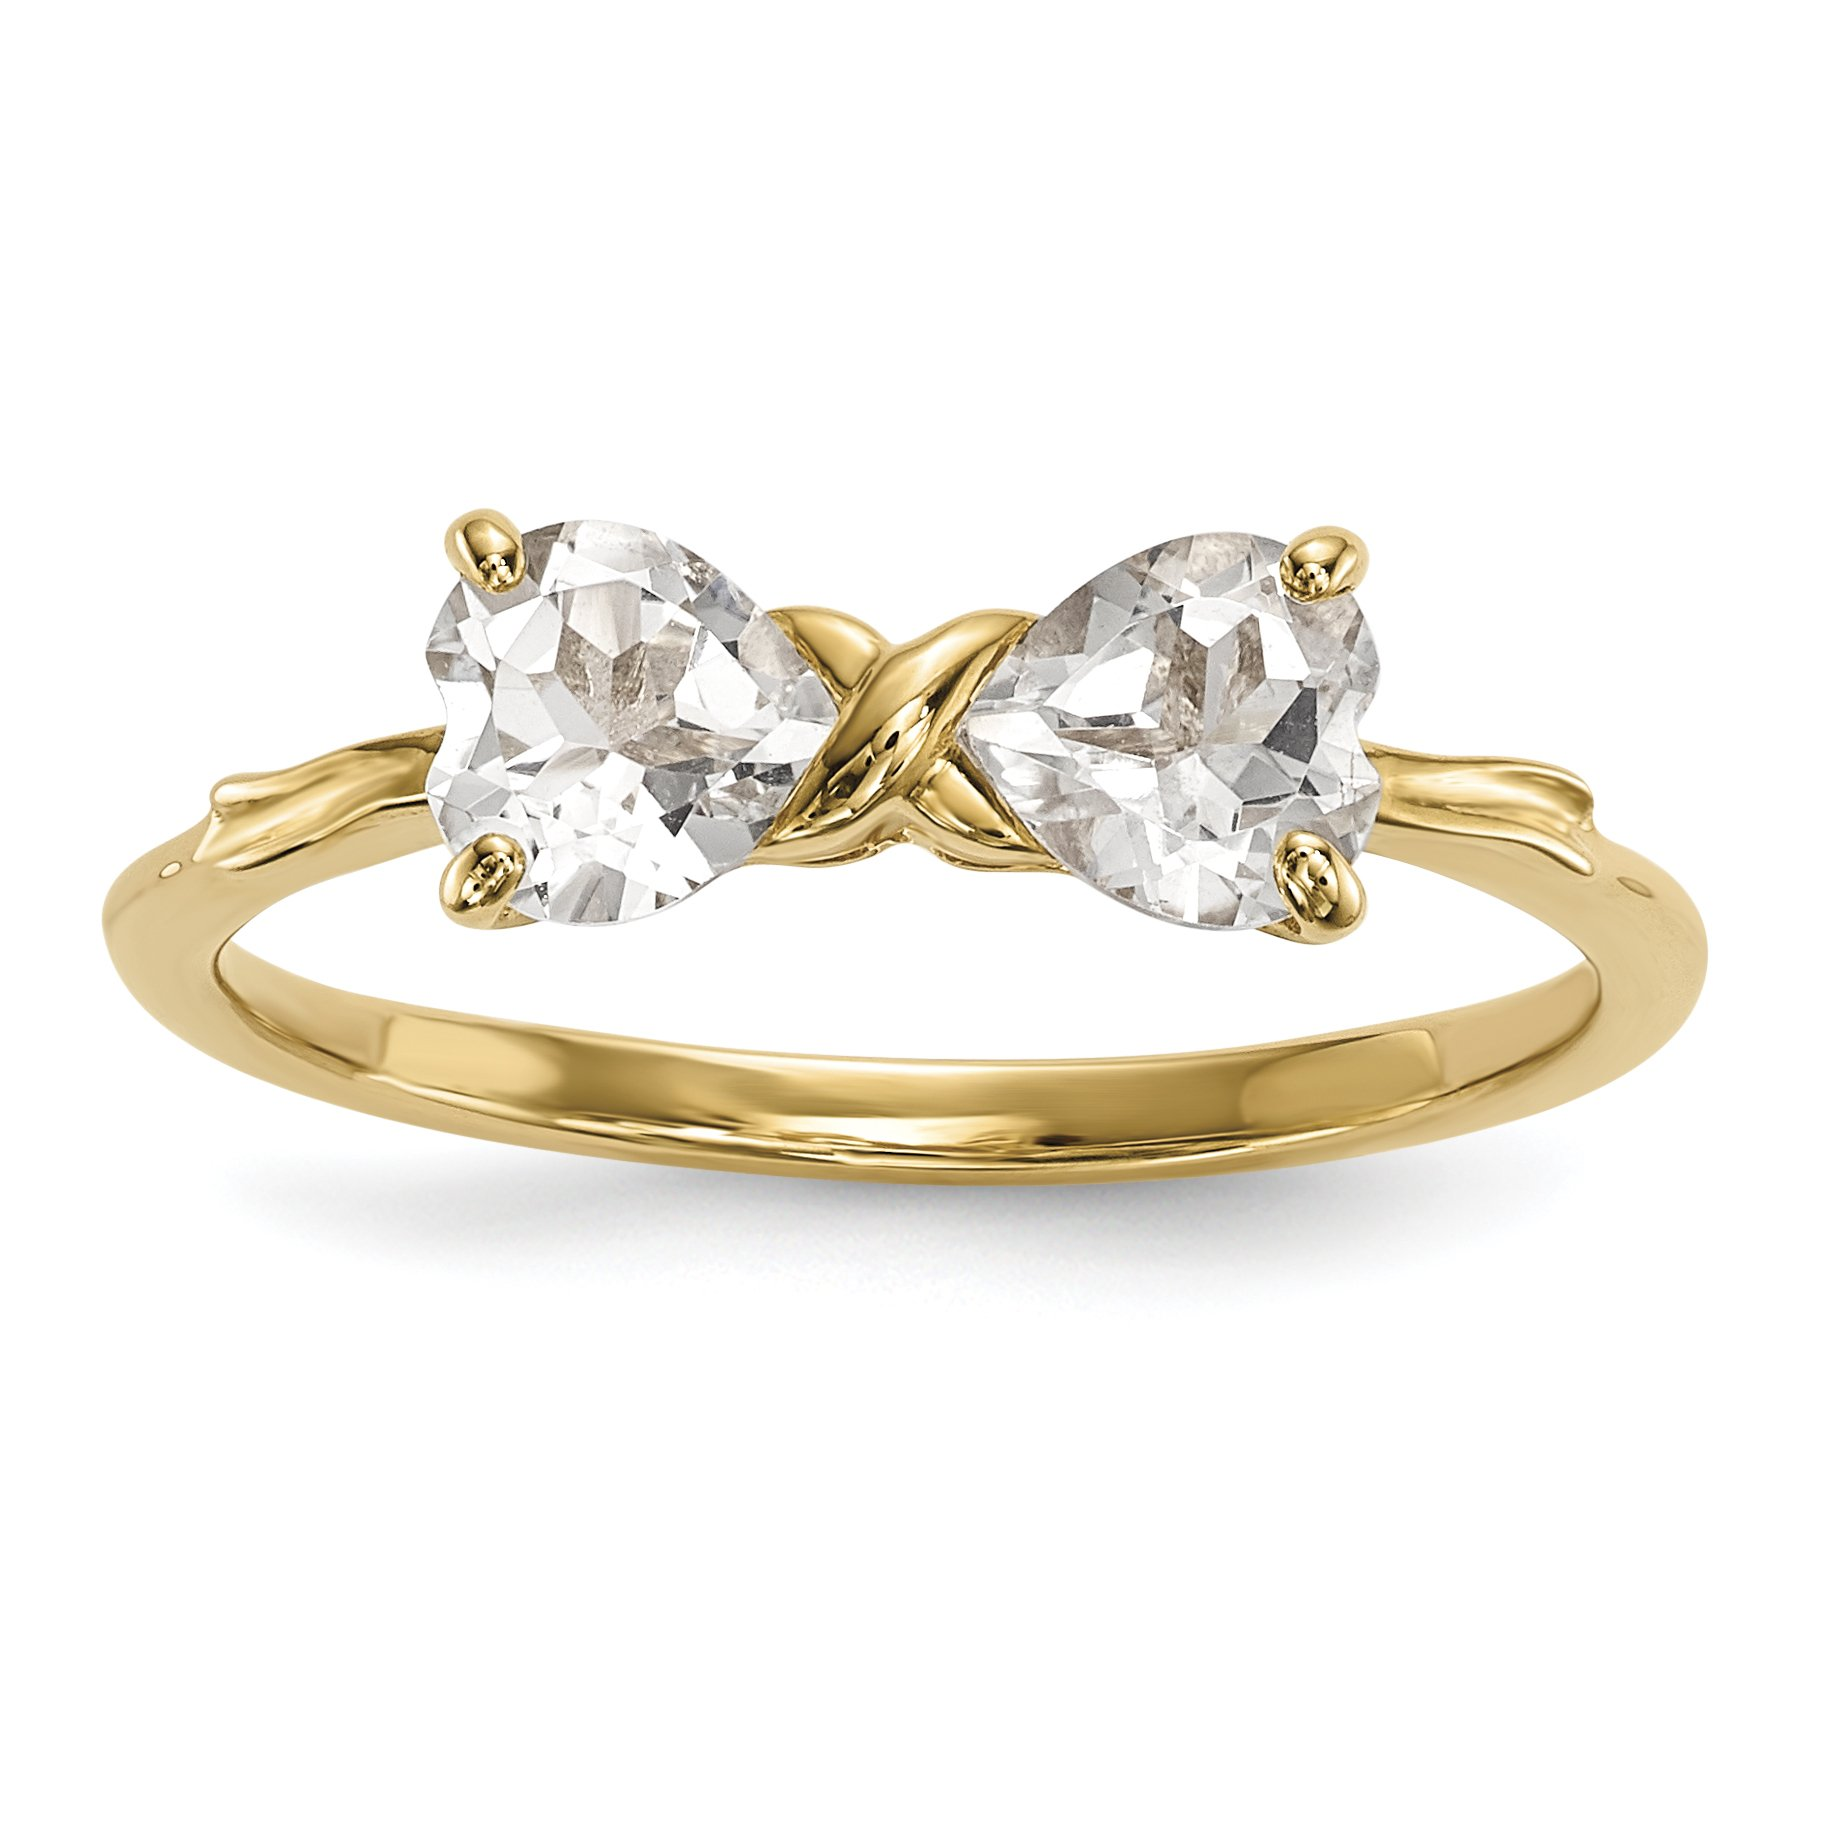 ICE CARATS 14k Yellow Gold White Topaz Bow Band Ring Size 7.00 Birthstone April Set Style Fine Jewelry Gift Set For Women Heart